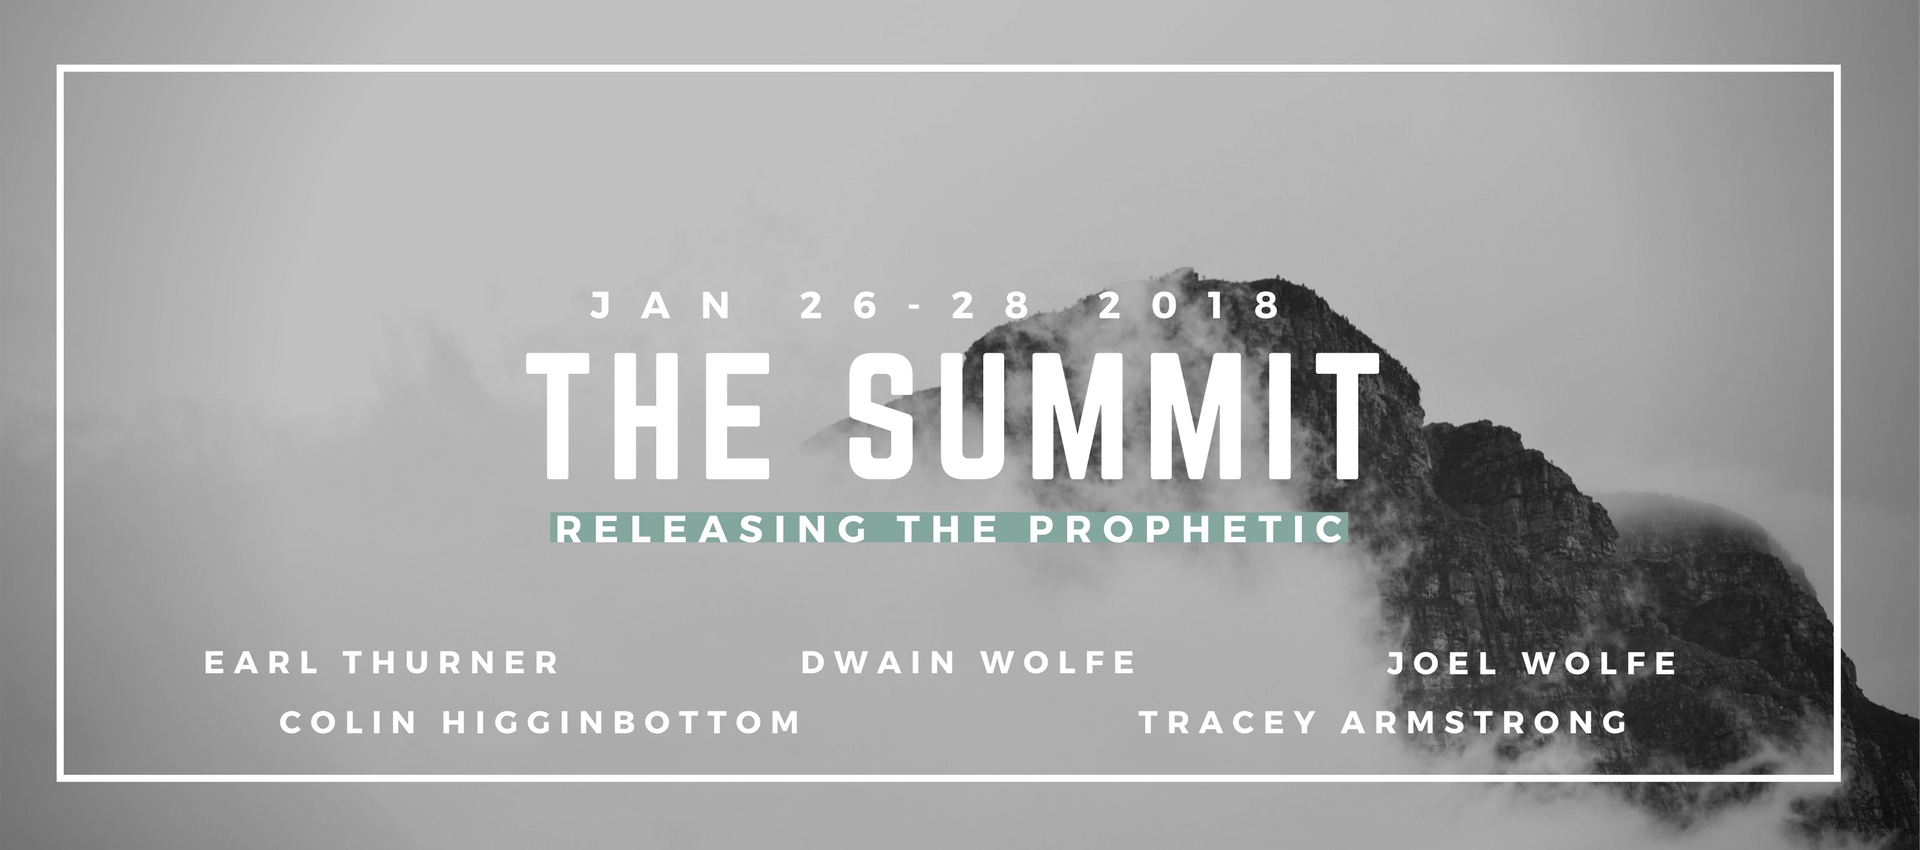 The Summit - Releasing the Prophetic